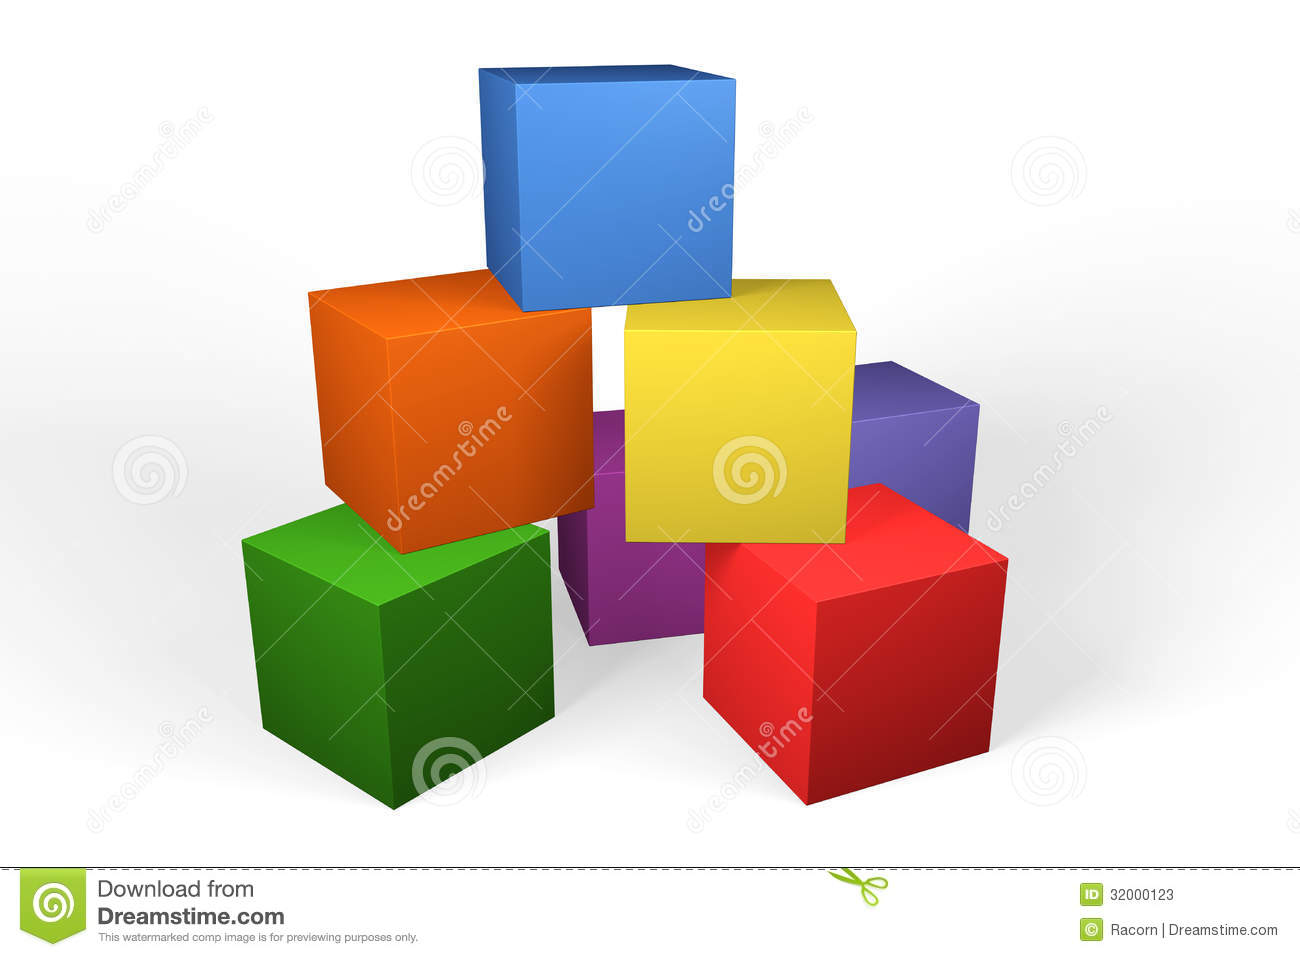 picture of map united states with Stock Photos Colourful D Building Blocks Colours Rainbow Stacked Randomly Top One Another Against White Background Image32000123 on 969 as well Stock Photography Ferret Paws Print Image28759692 in addition World Map With Country Names And Capitals Maps Of Usa In India To Usa besides 818 Pescara  Italy likewise Bm.